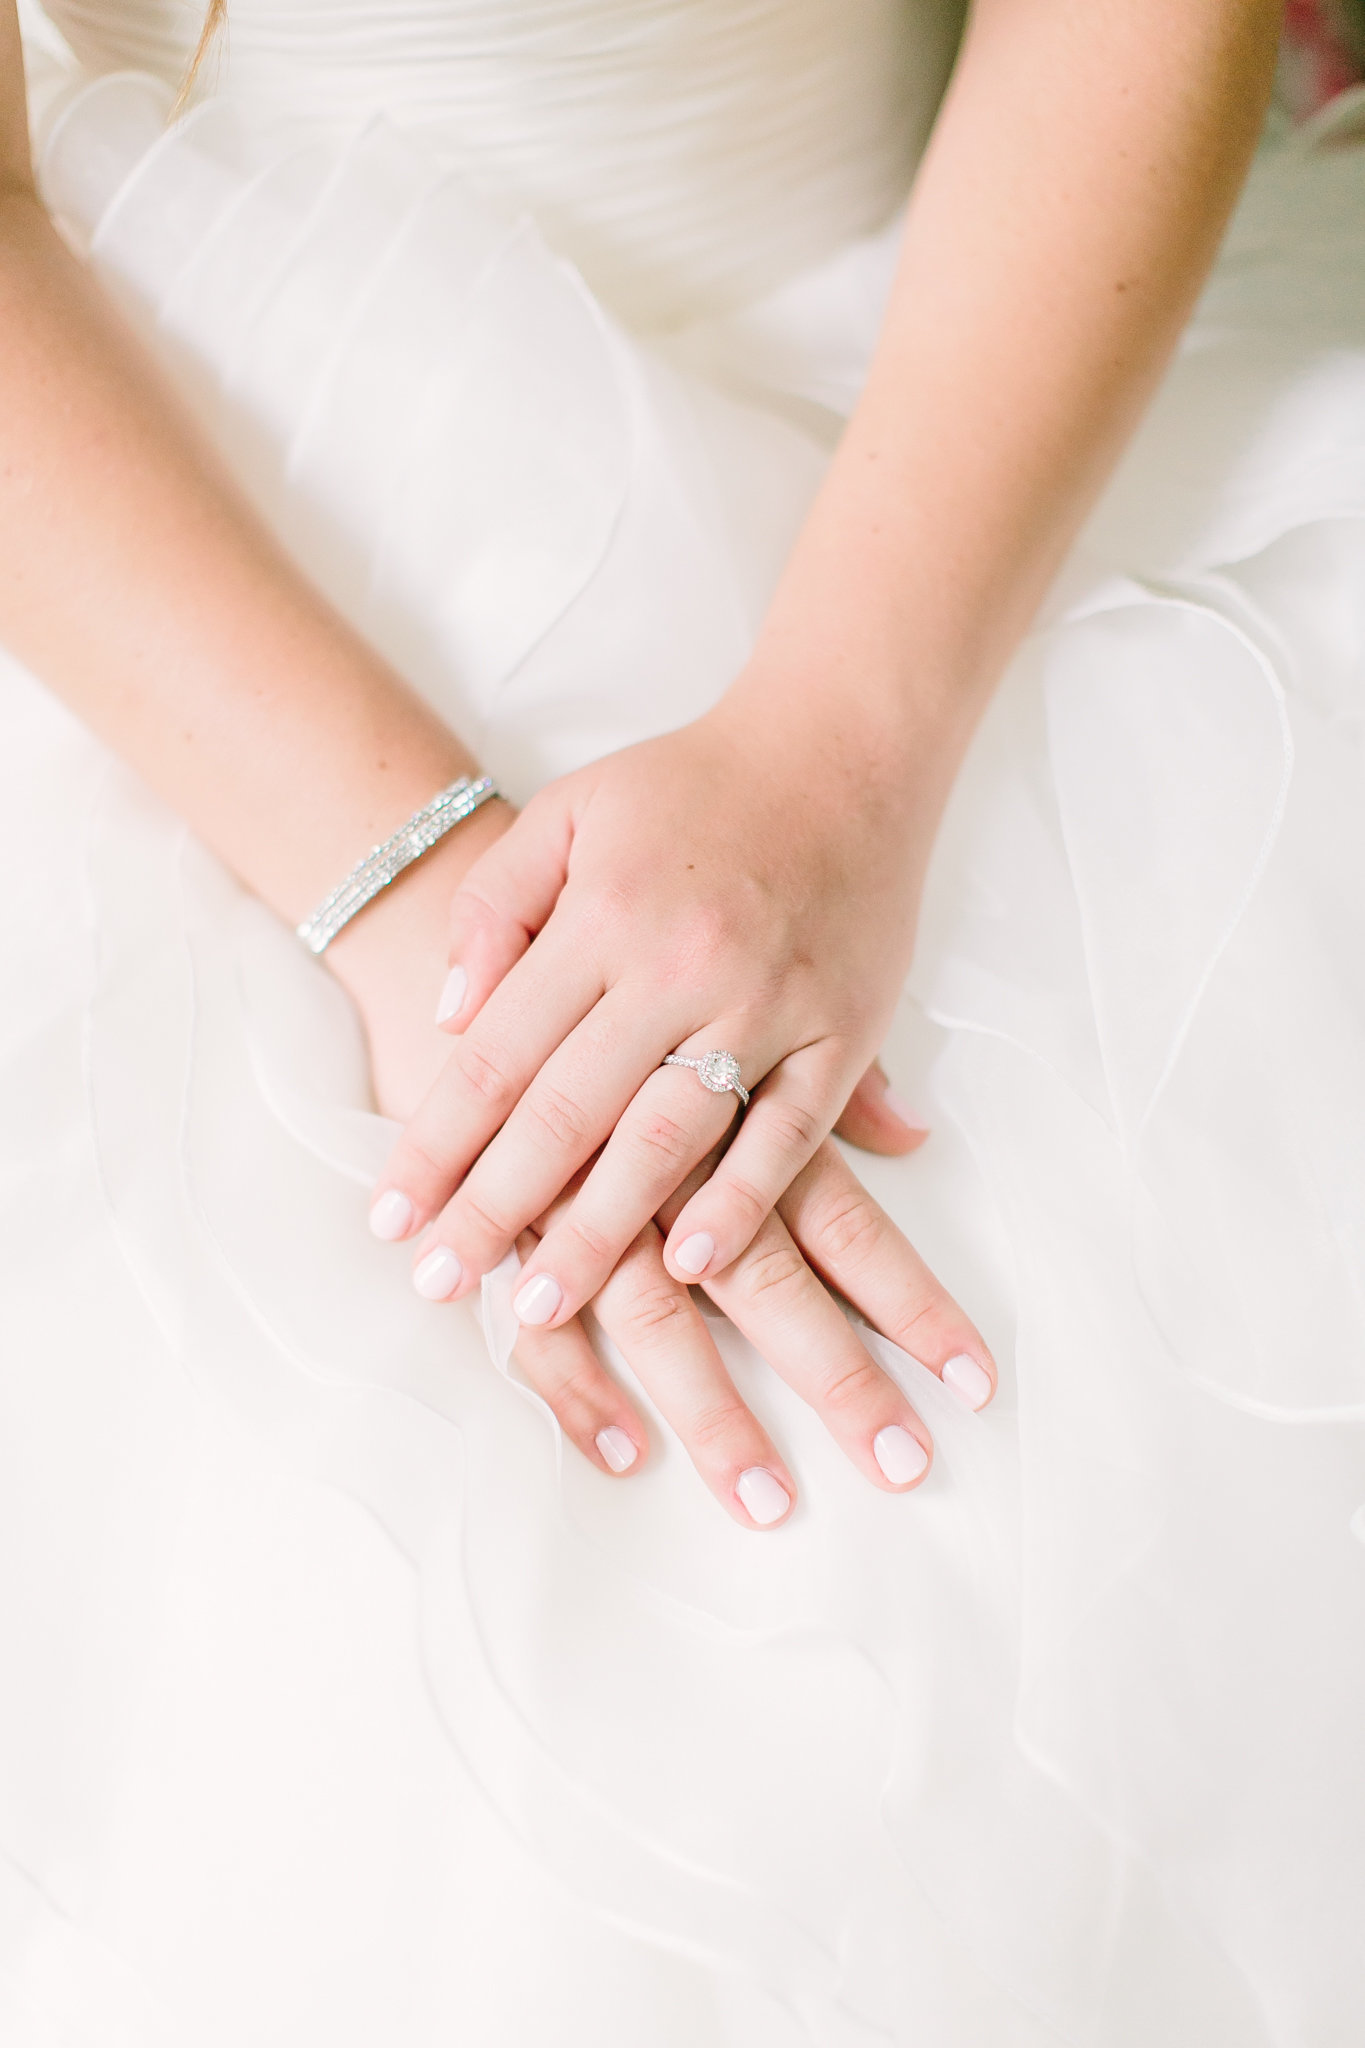 brides hands with diamond bracelet and ring